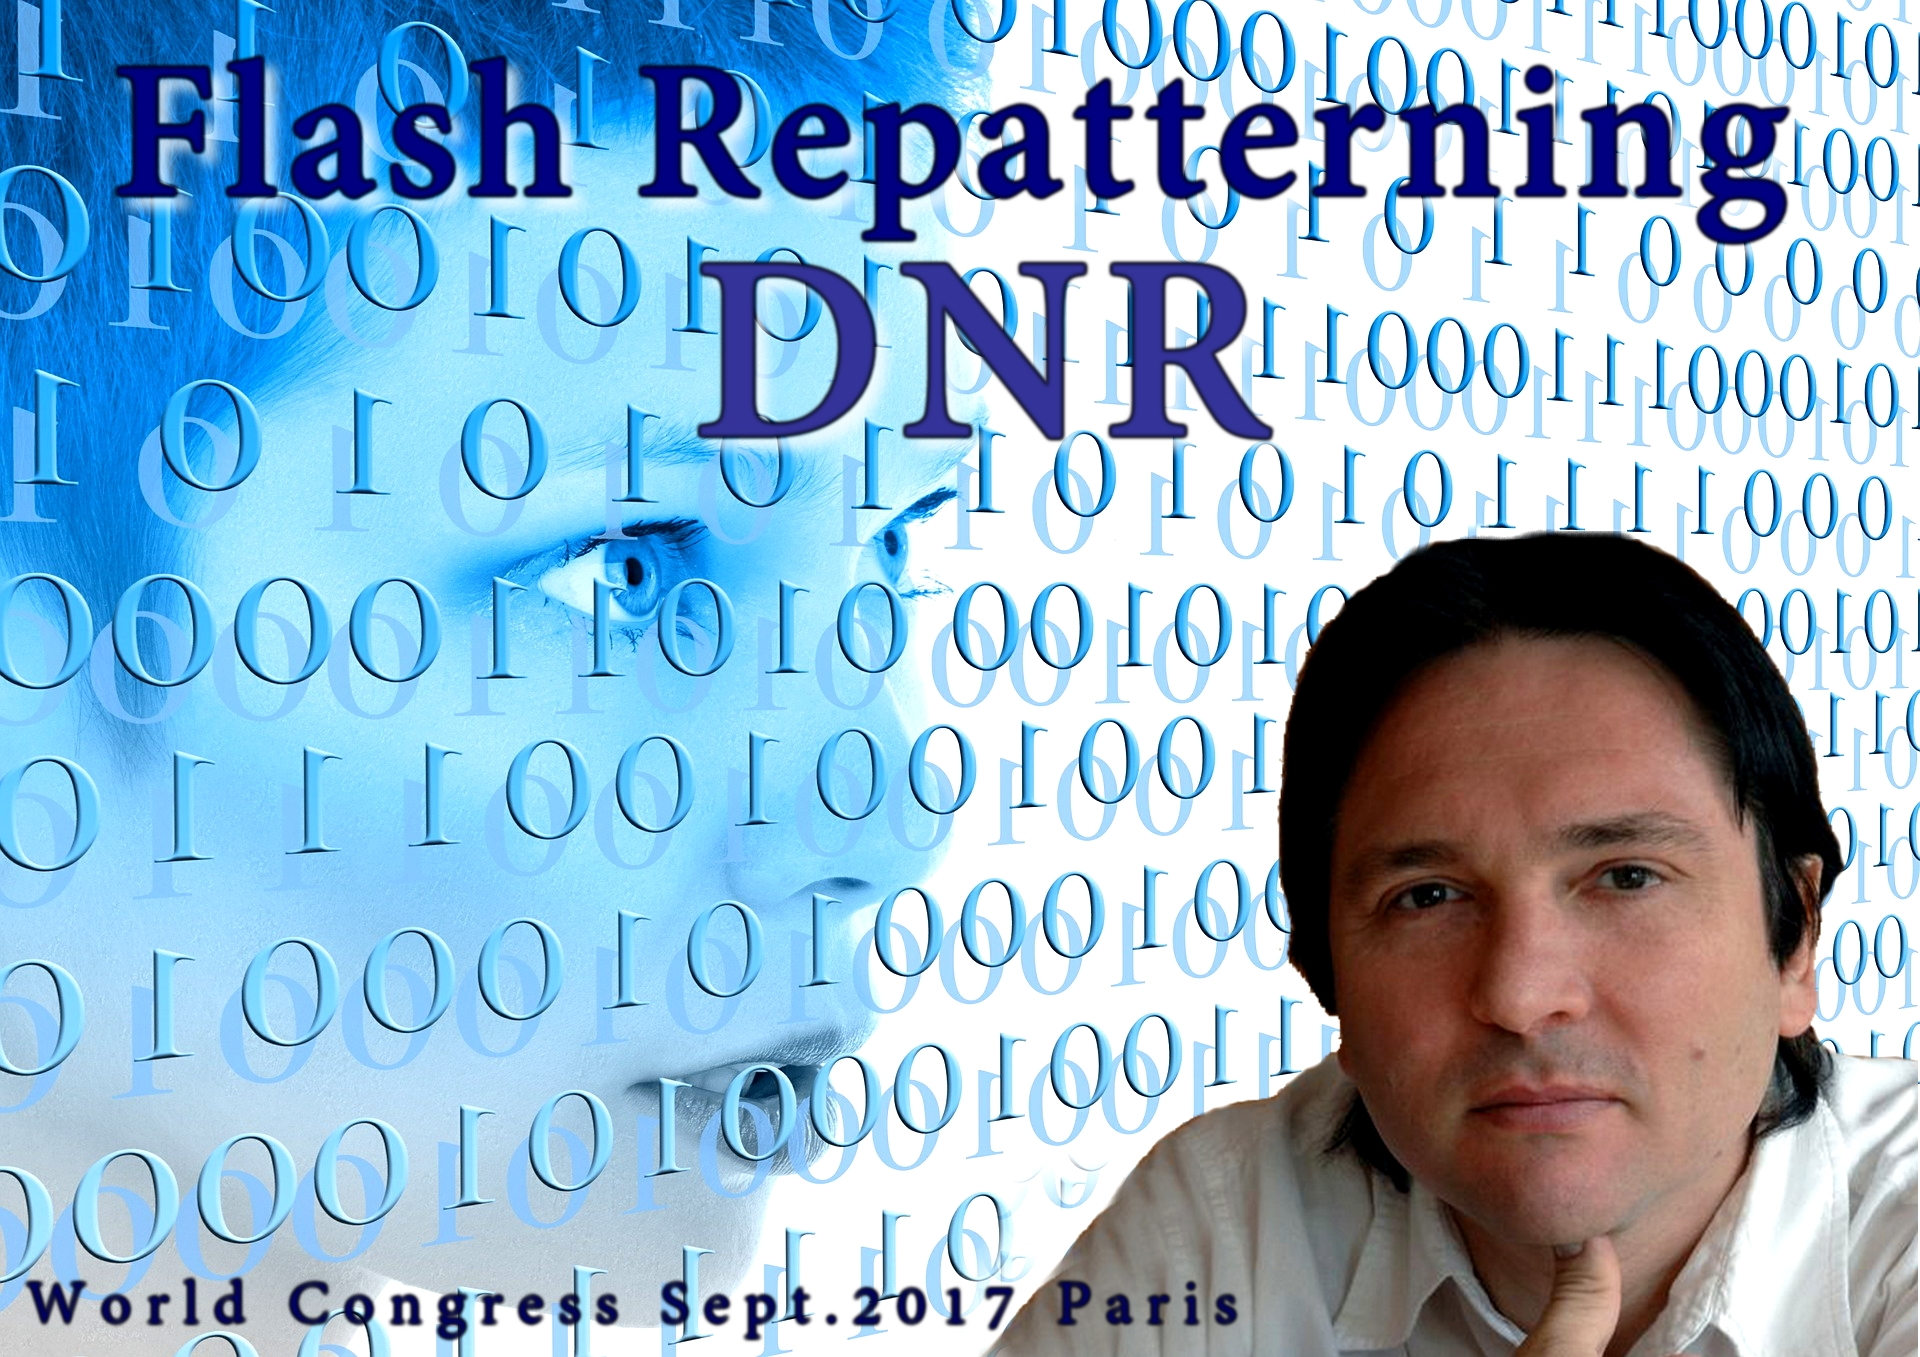 DNR – 'Flash Repatterning' Technique